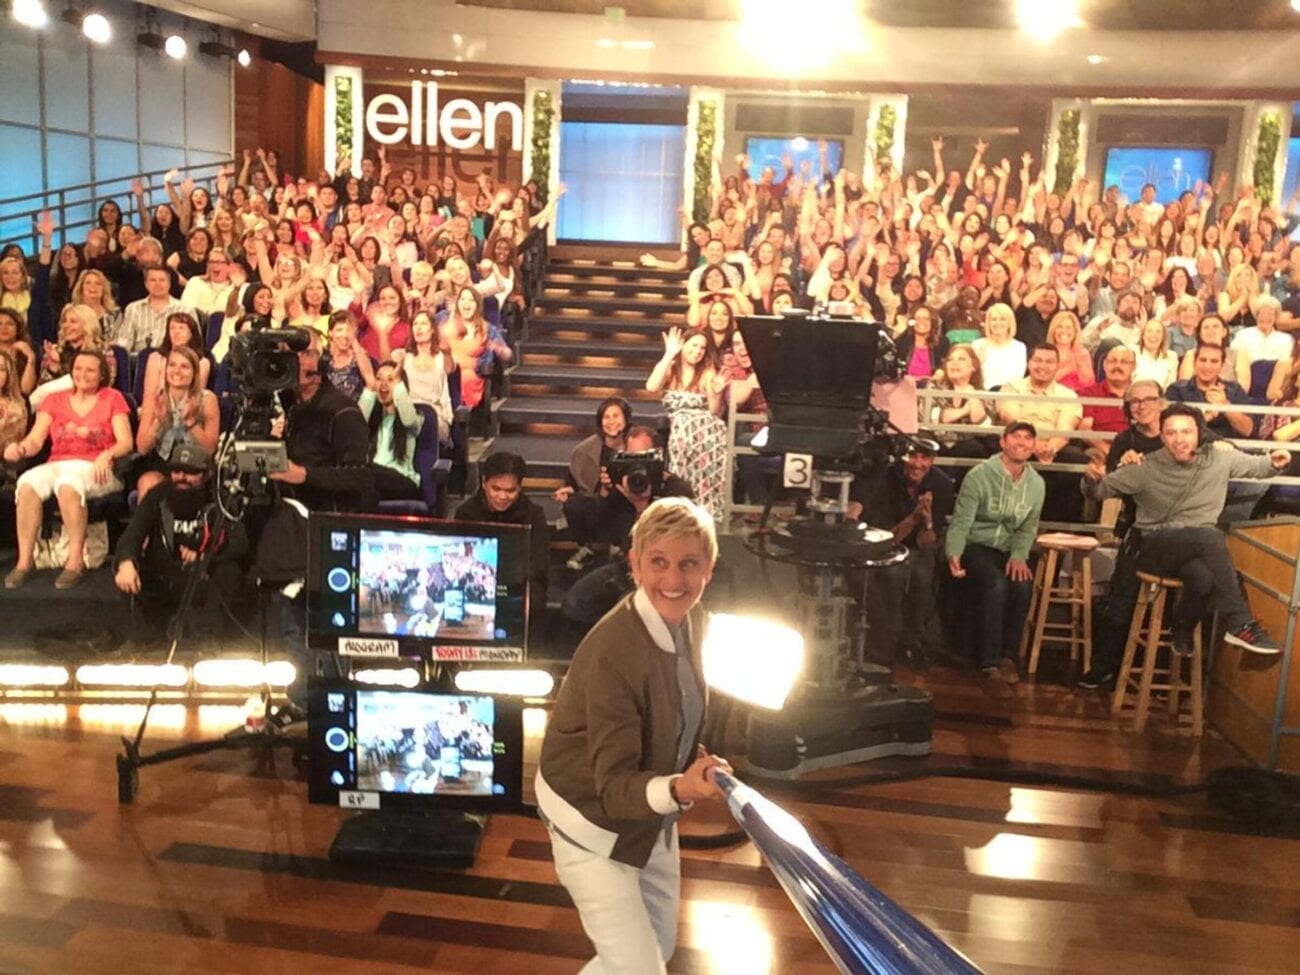 A lot of people think it's all fun and games on 'The Ellen DeGeneres Show'. Here are the strict rules in place for audience members.